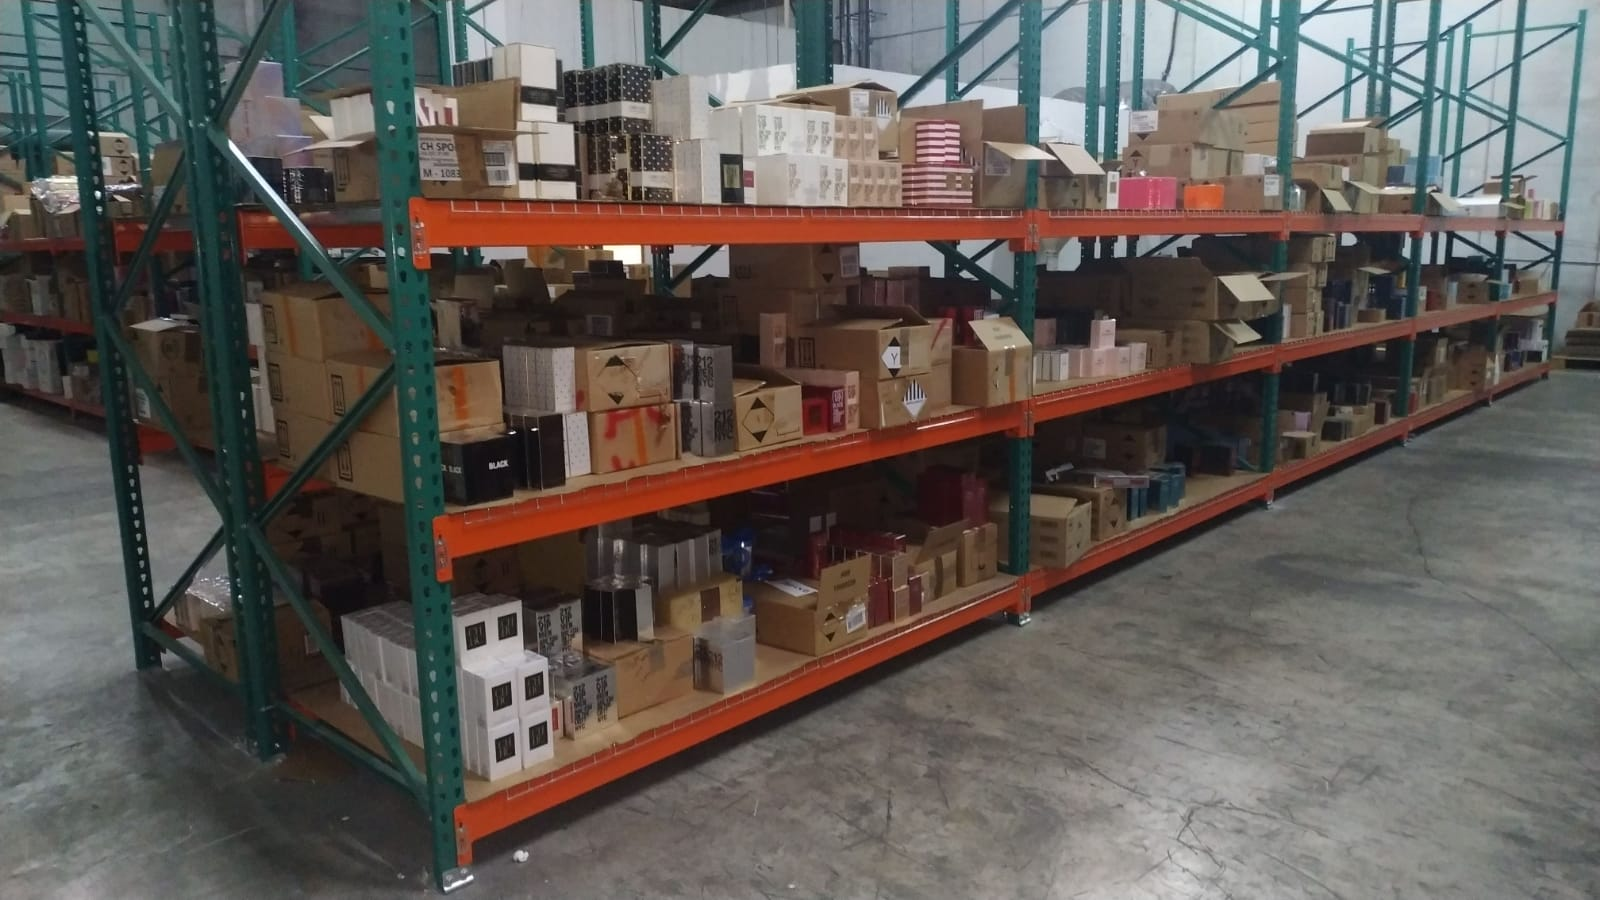 warehouse-image-4.jpg